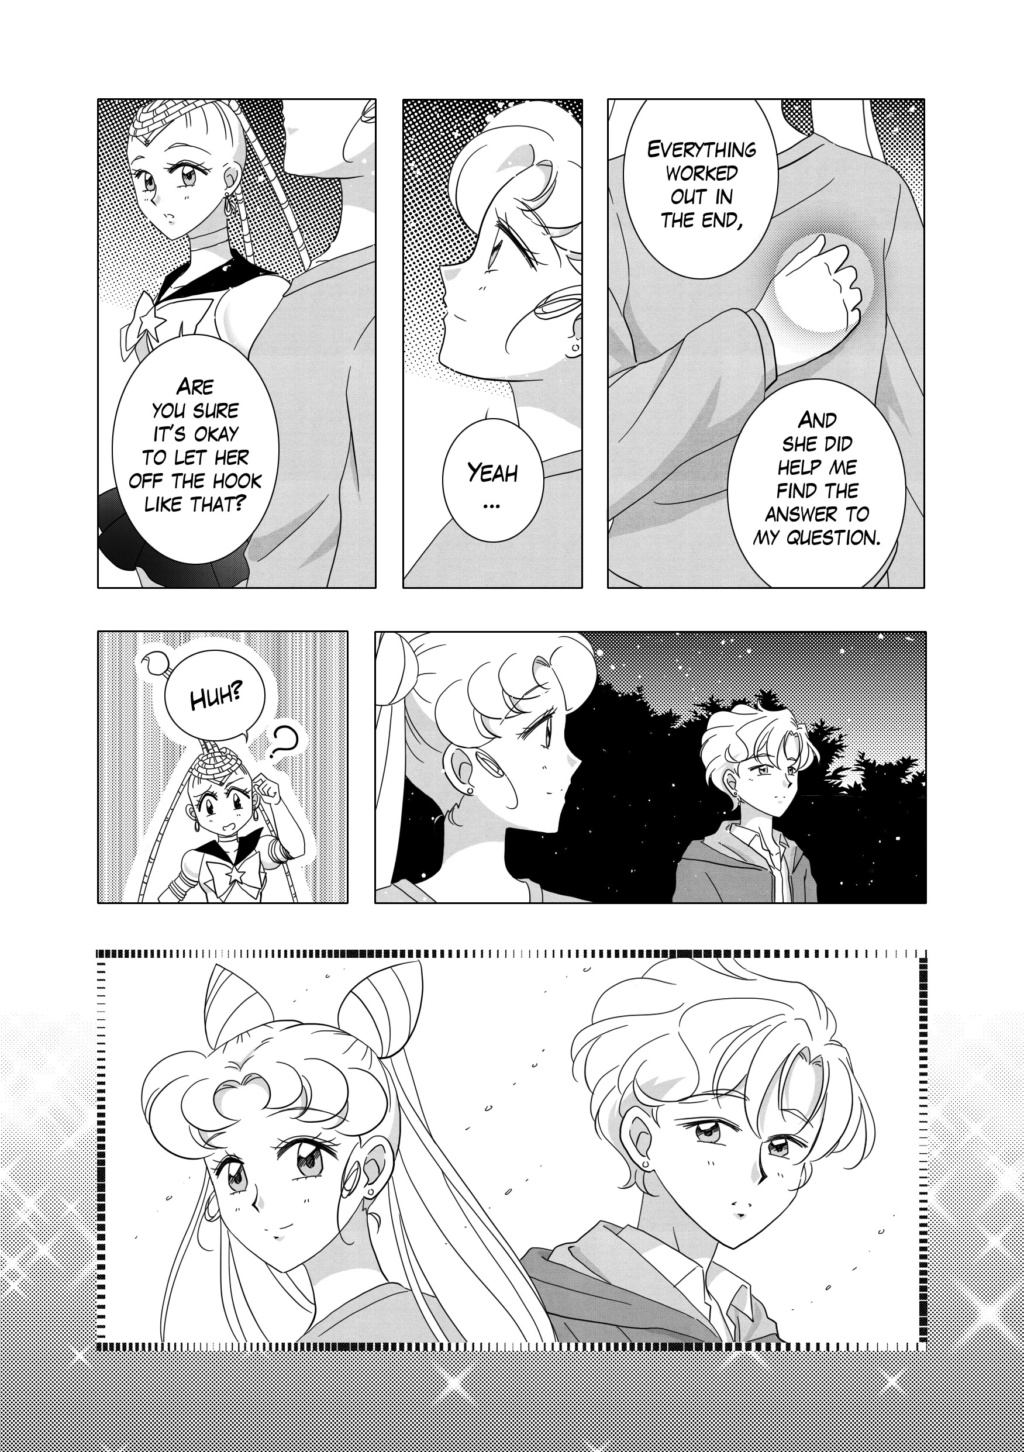 [F] My 30th century Chibi-Usa x Helios doujinshi project: UPDATED 11-25-18 - Page 19 Sbs_pg49